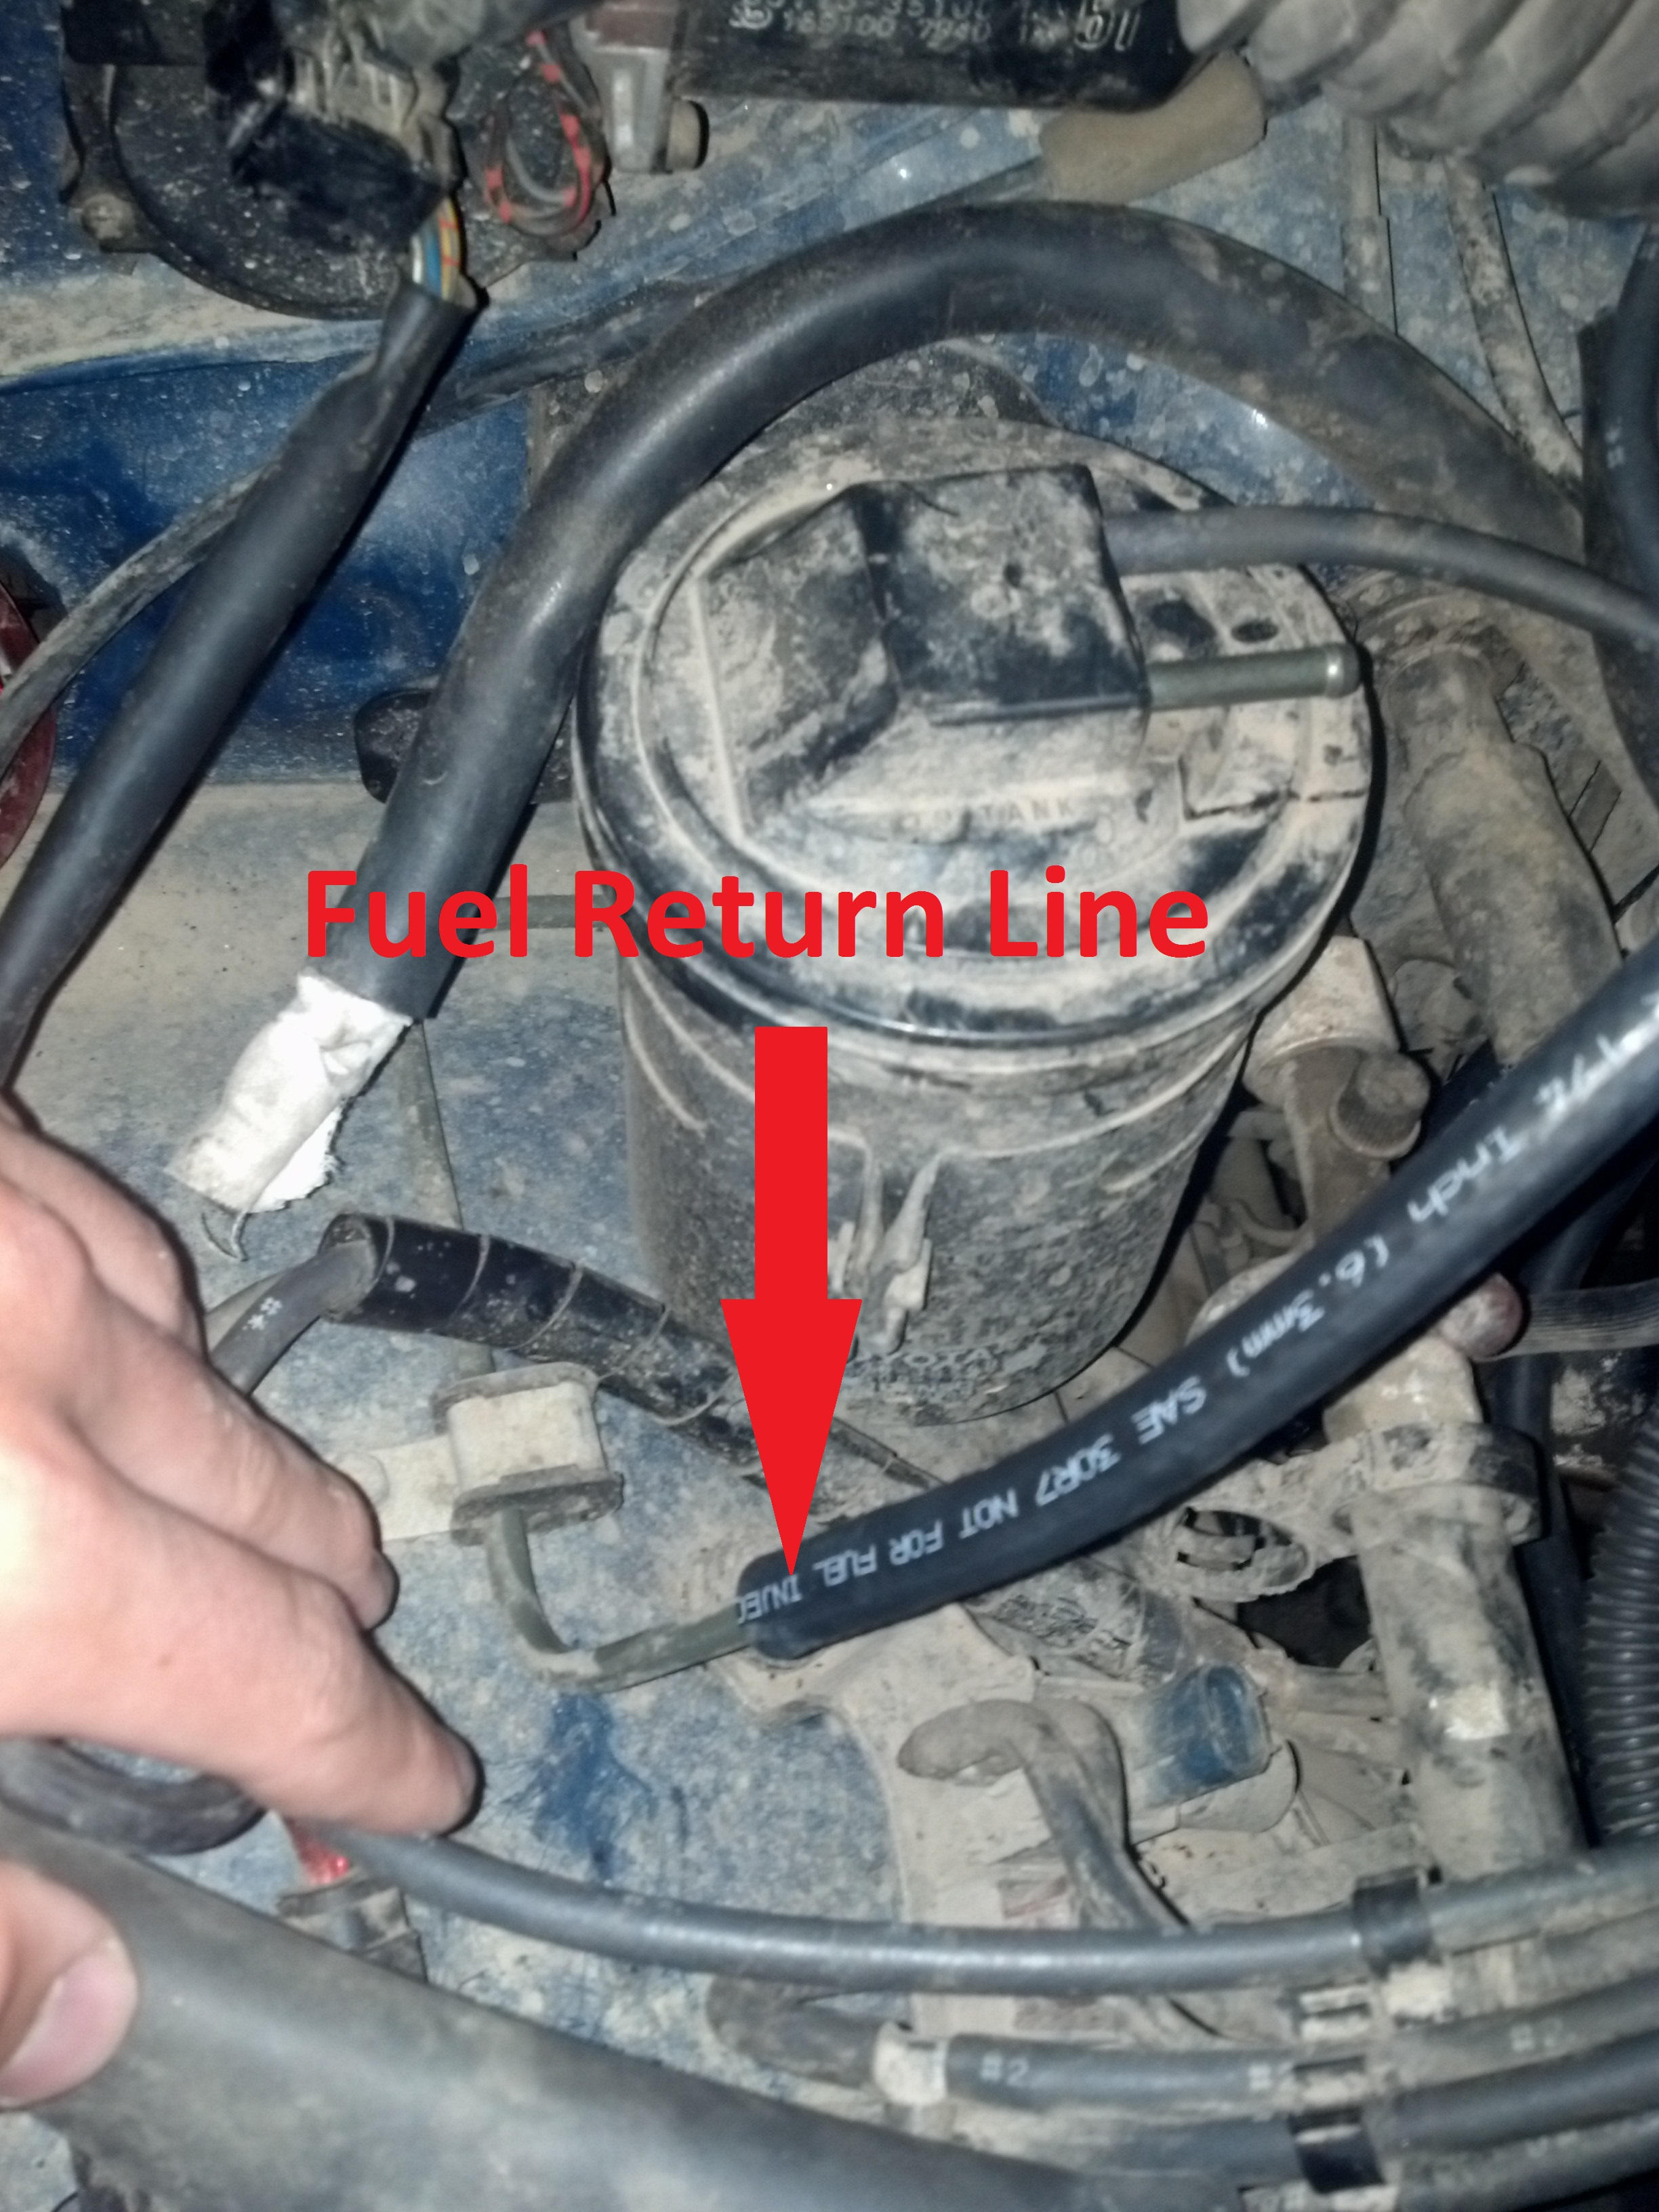 What To Do About The Fuel Return Line